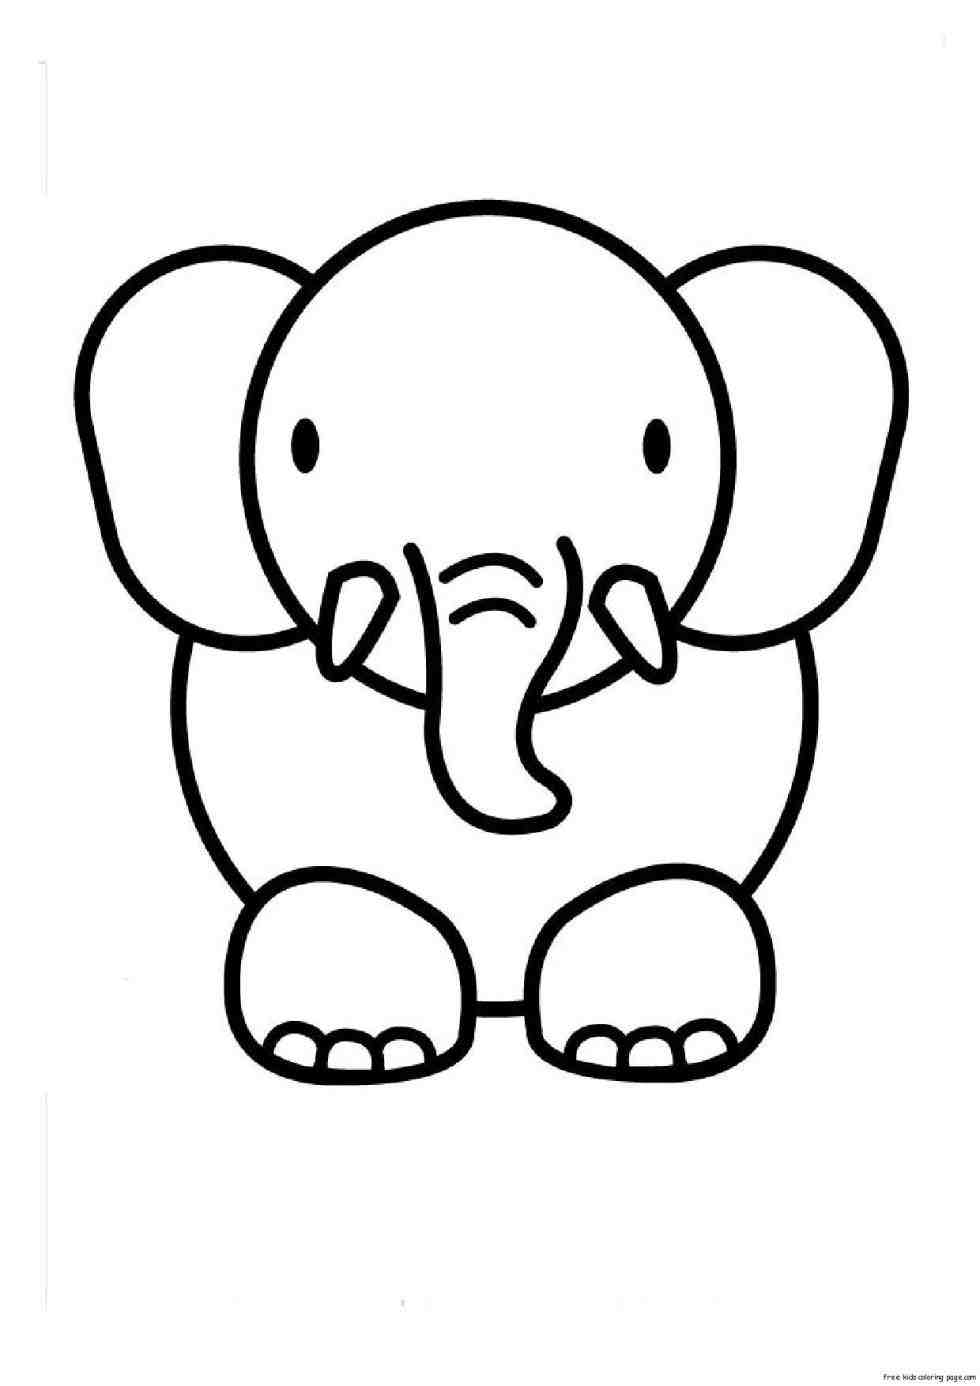 980x1386 Images For Kids Free Download Clip Art Elephant Cute Drawings